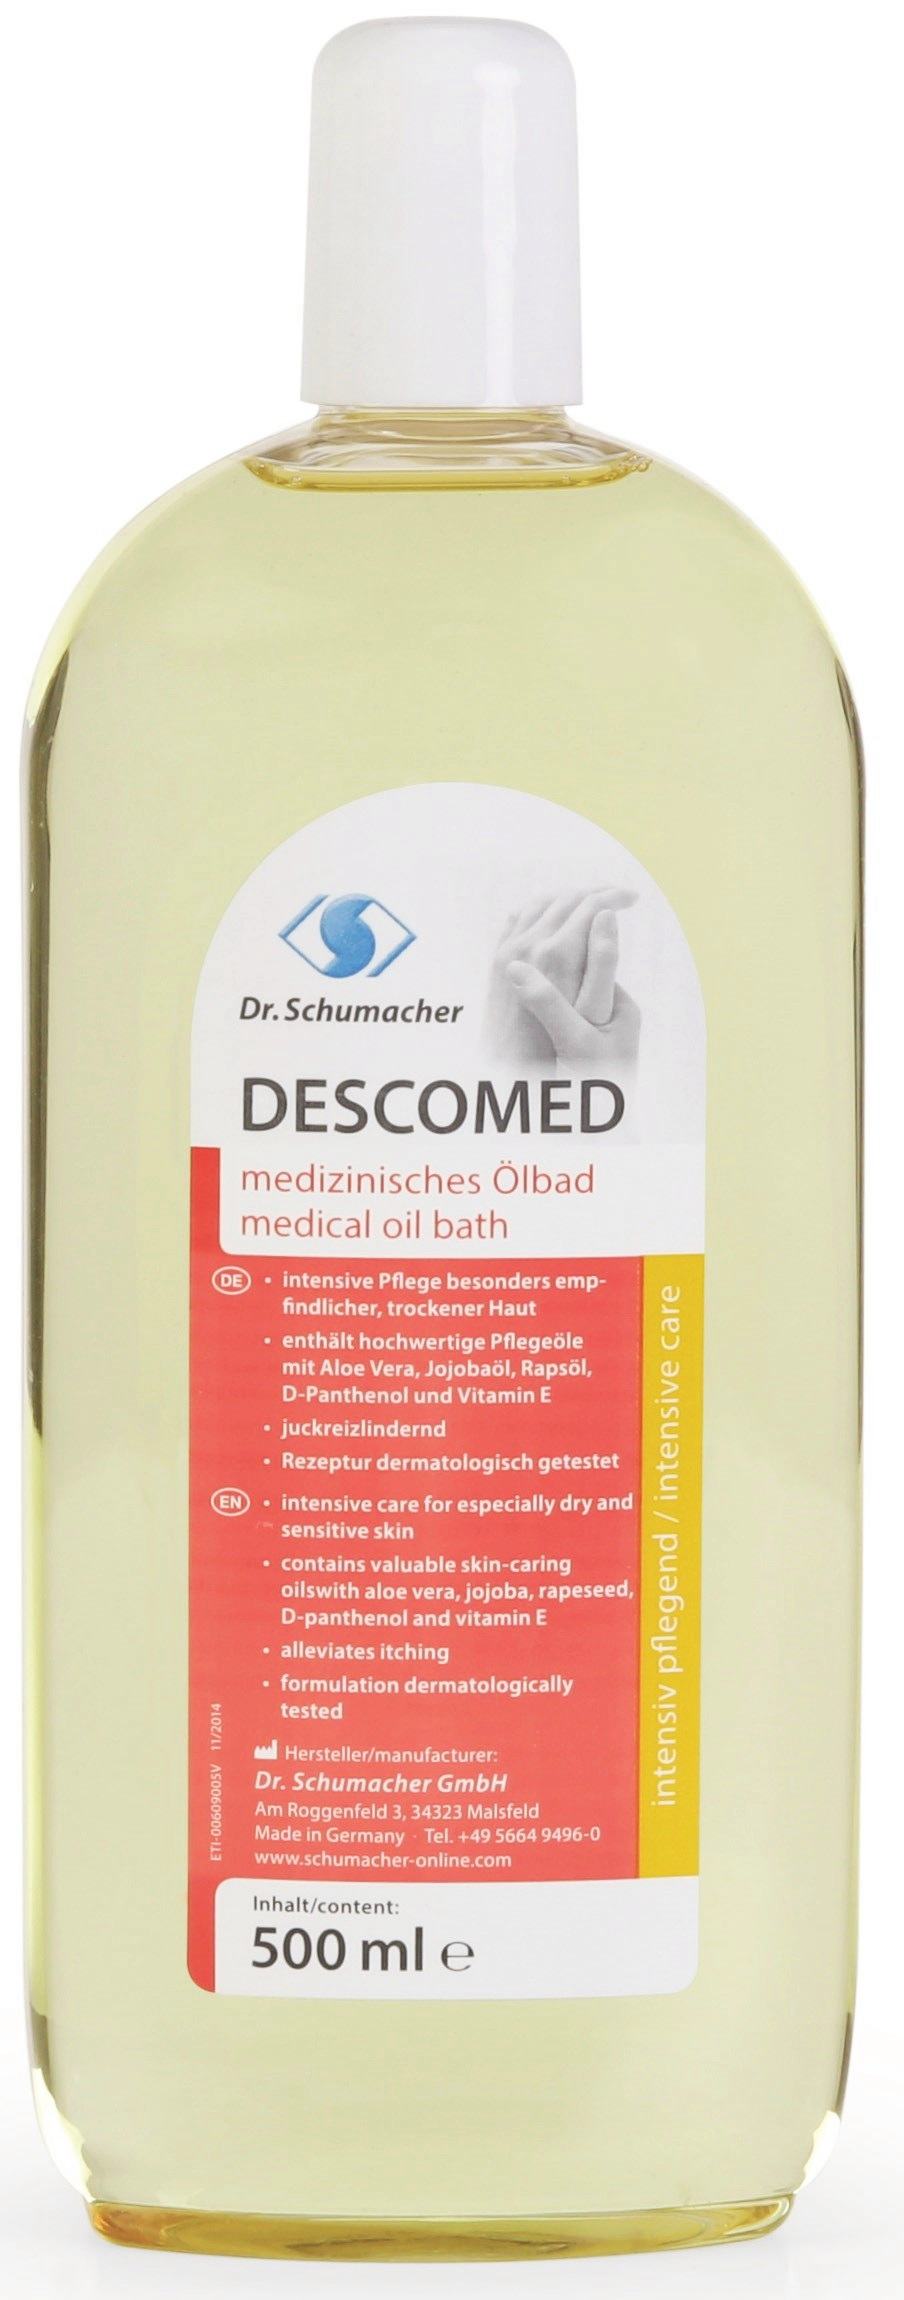 Descomed Ölbad 500 ml